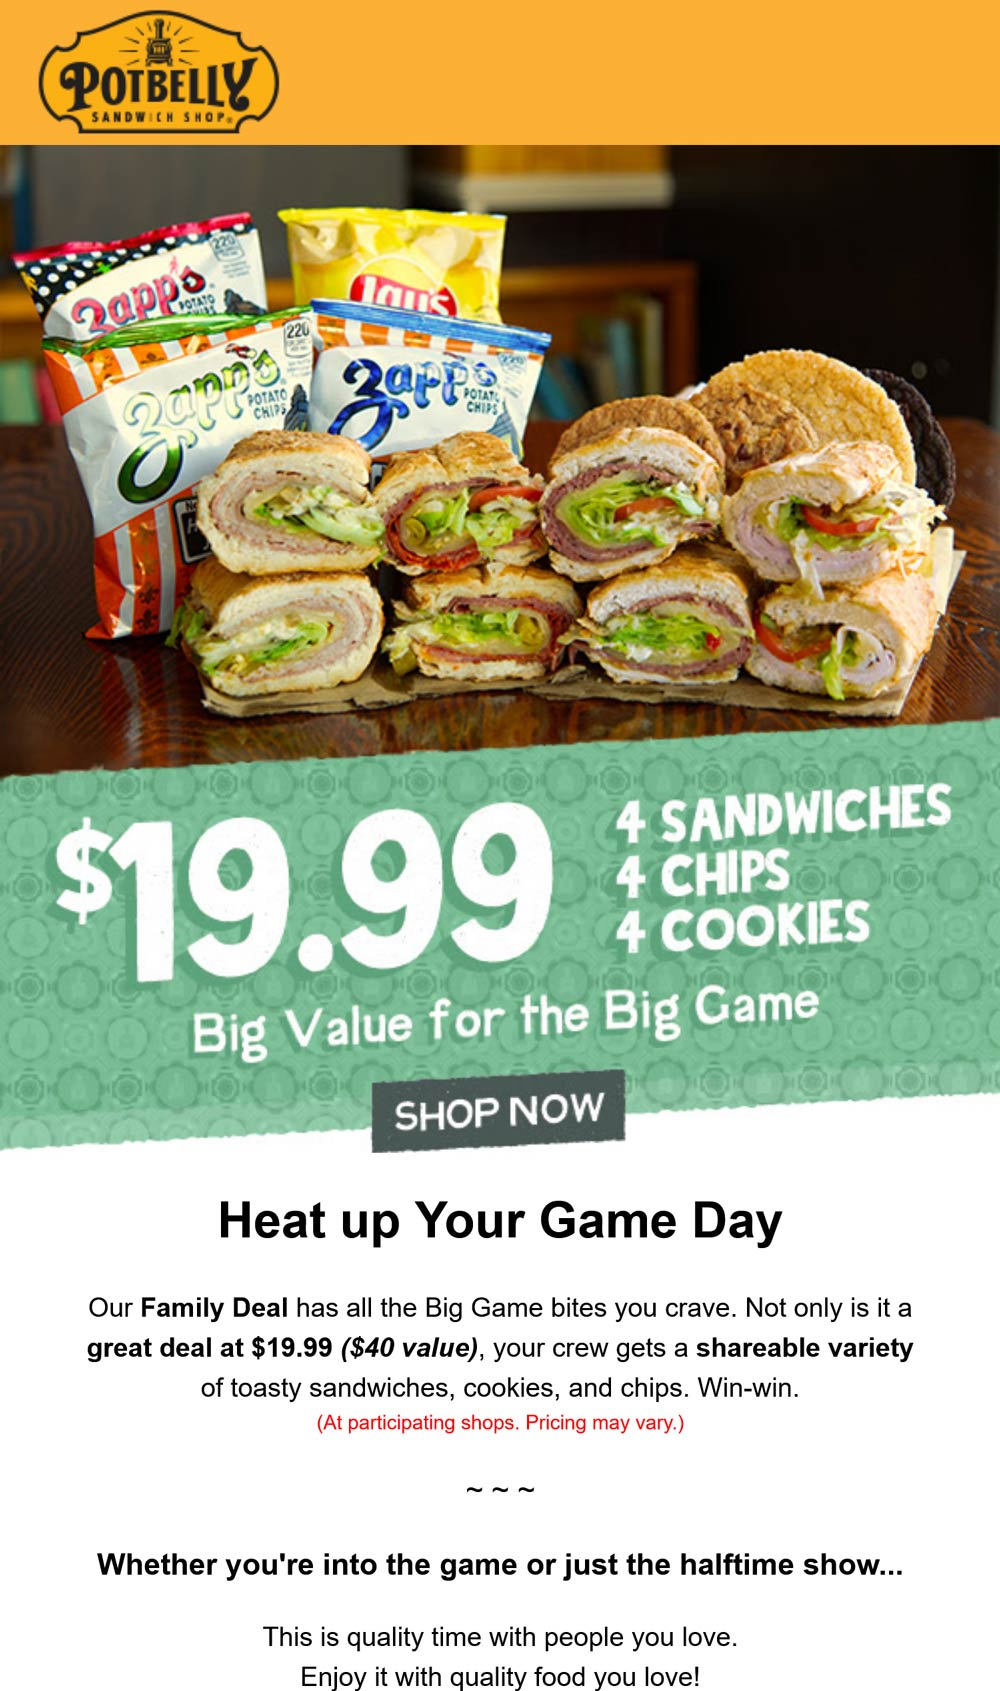 Potbelly restaurants Coupon  4 sandwiches + 4 chips + 4 cookies = $20 today at Potbelly Sandwich Shop #potbelly